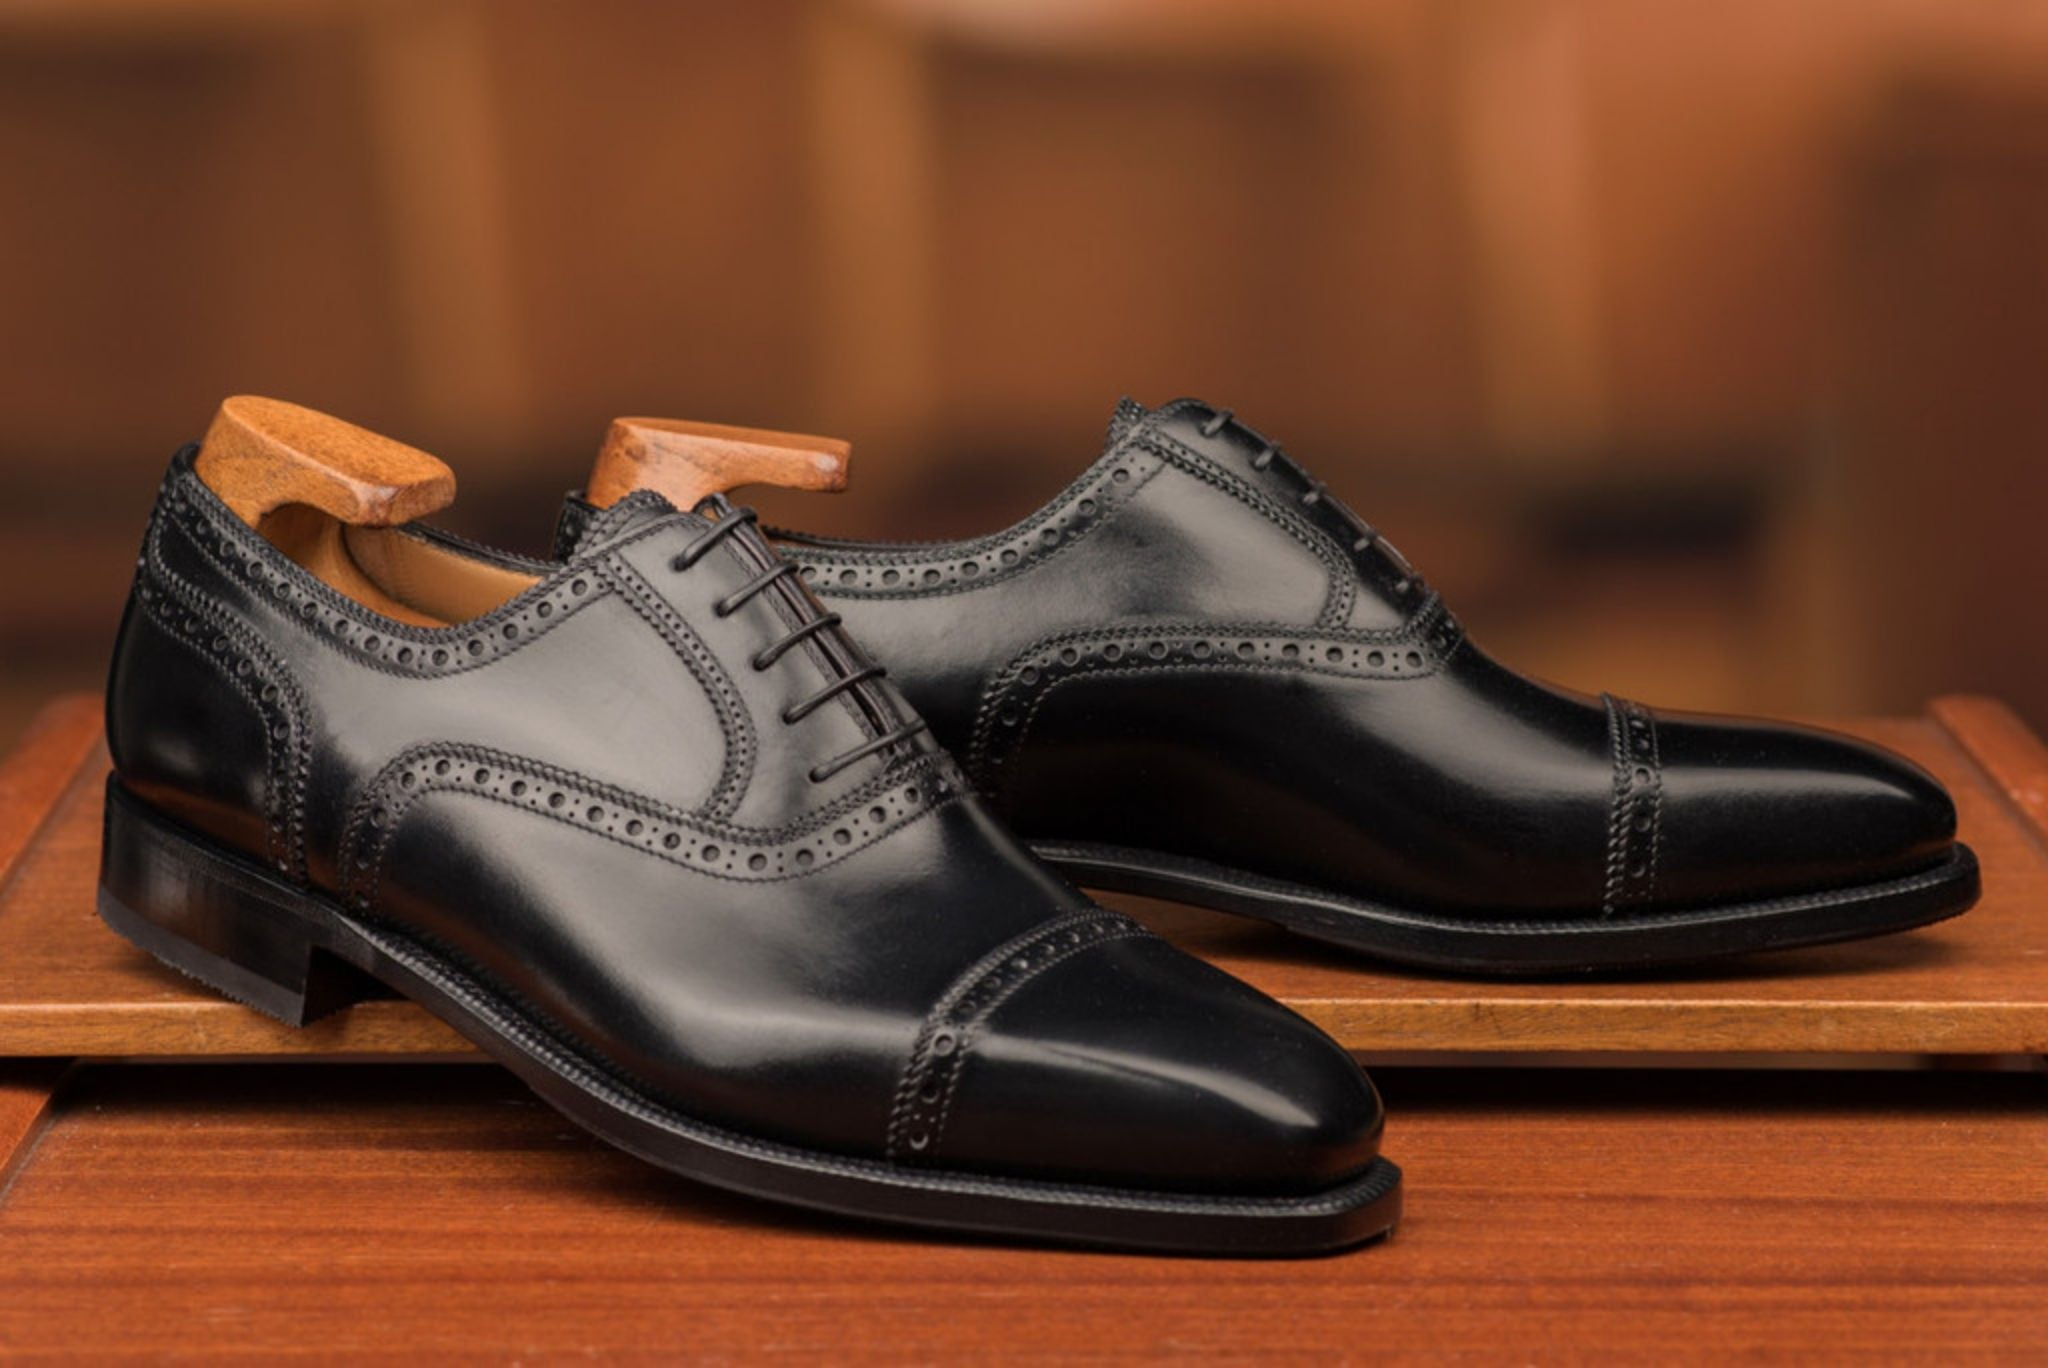 Black cap toe oxfords - Enzo Bonafe skoaktiebolaget